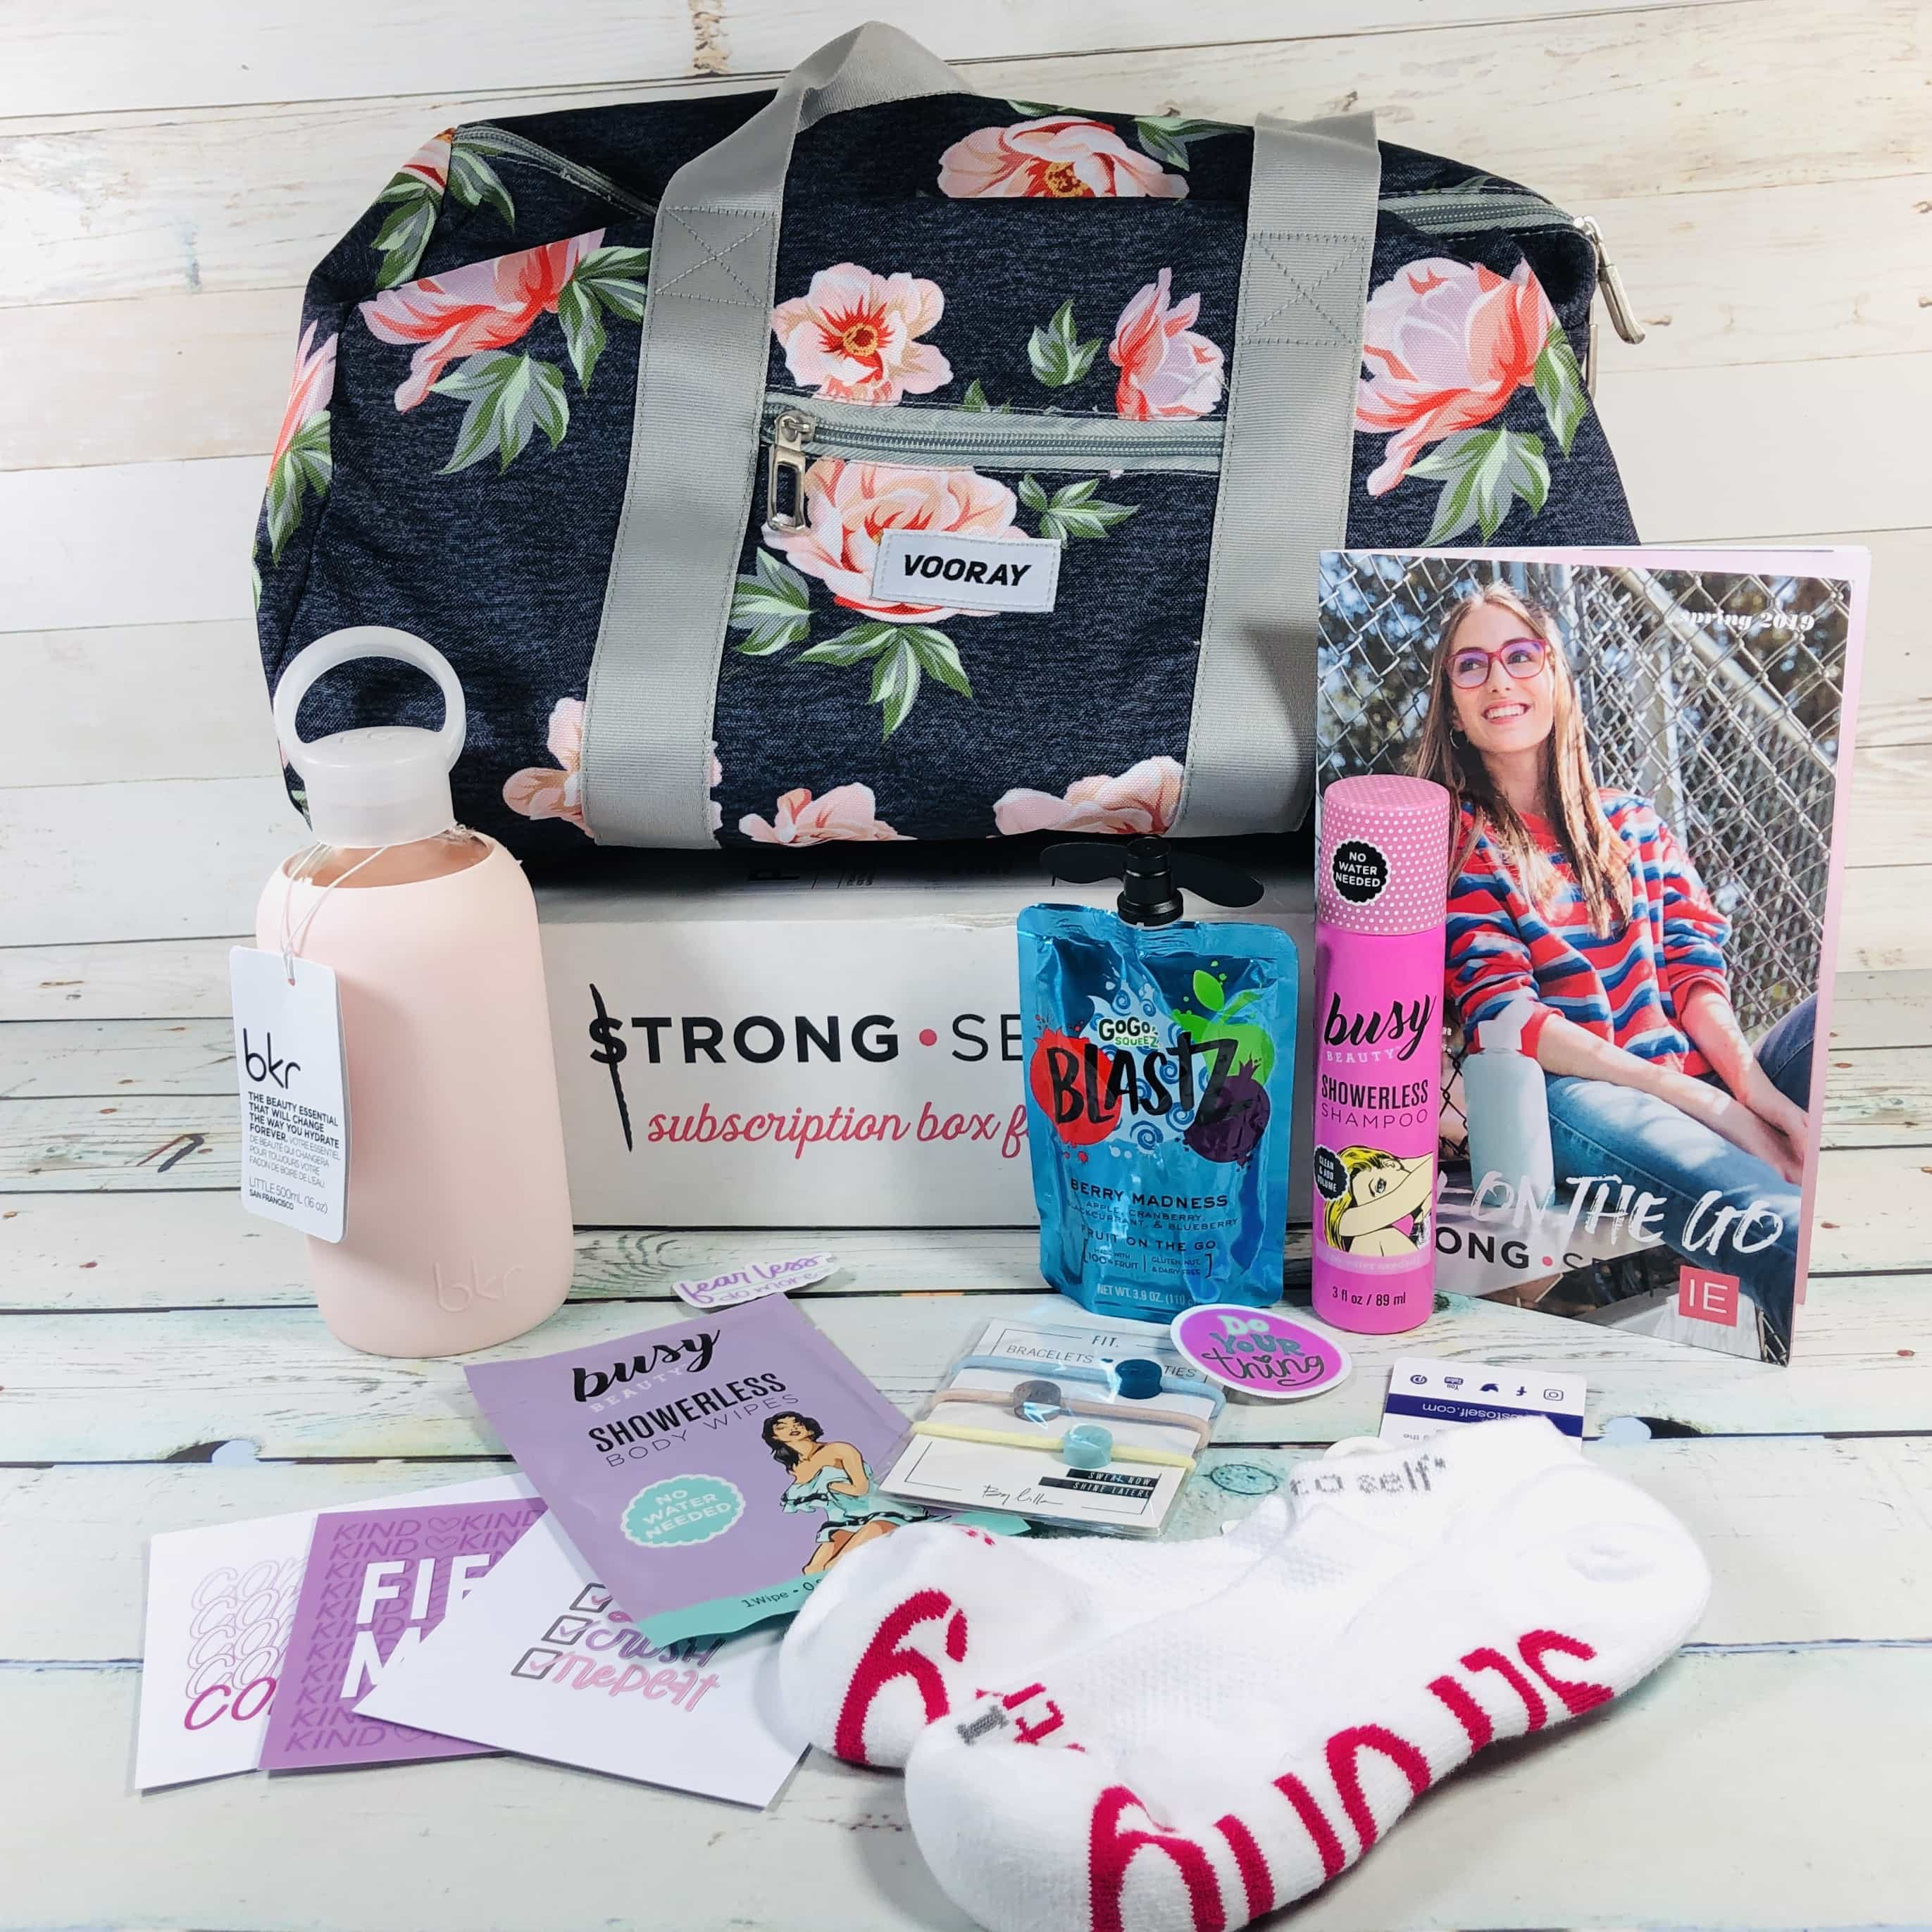 STRONG self(ie) Subscription Box Review – Spring 2019 BURST Box